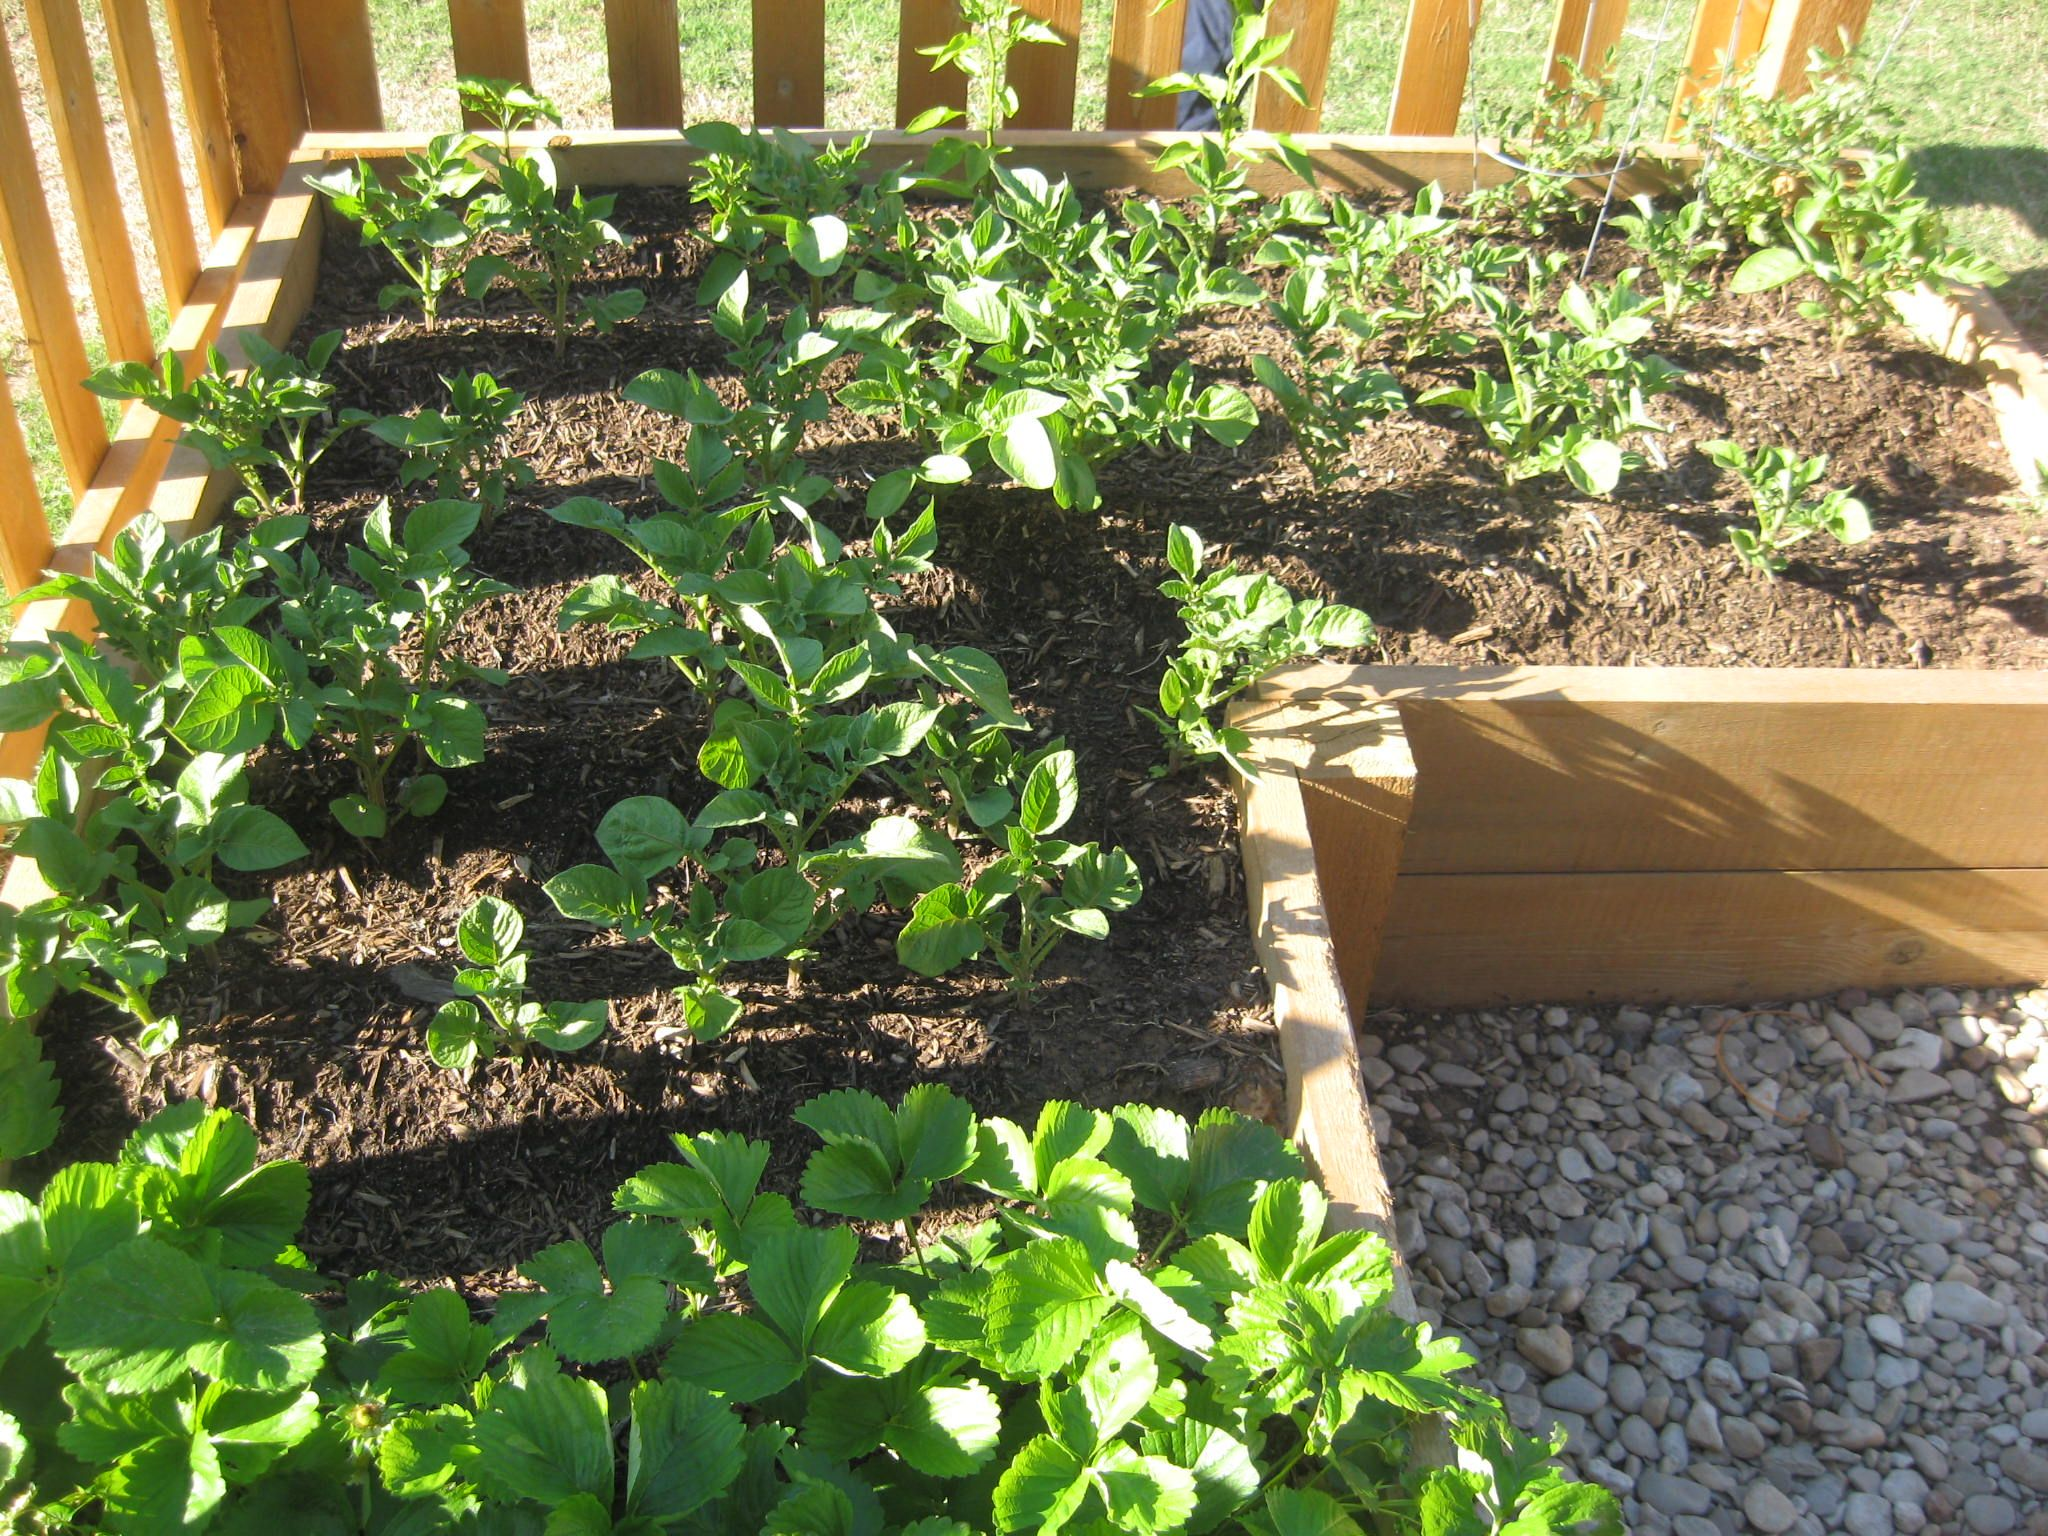 veggie garden ideas on a budget vegetable gardening